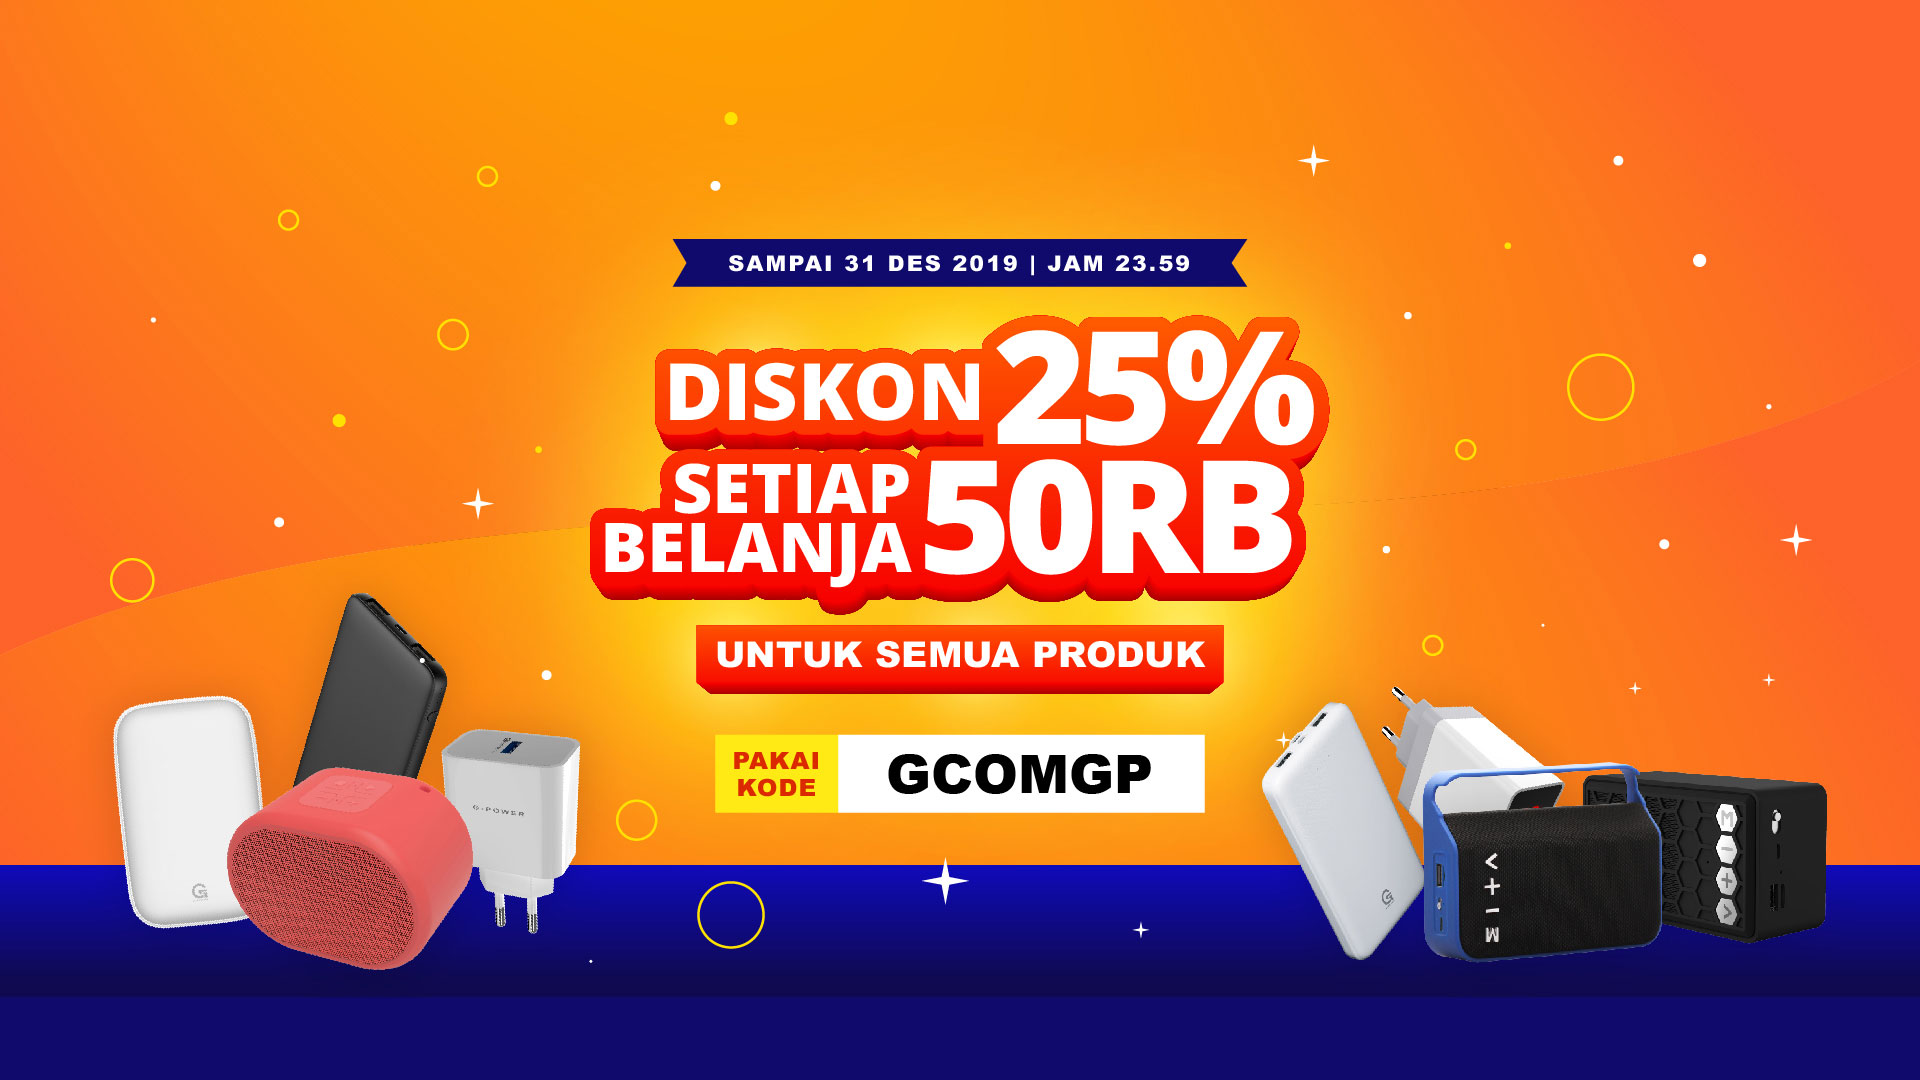 altr-ultimate-ecommerce_gpower_wdd_home_graphic_main-slider_20191211-announcement-shopee-disc25-kodegcomgp.jpg